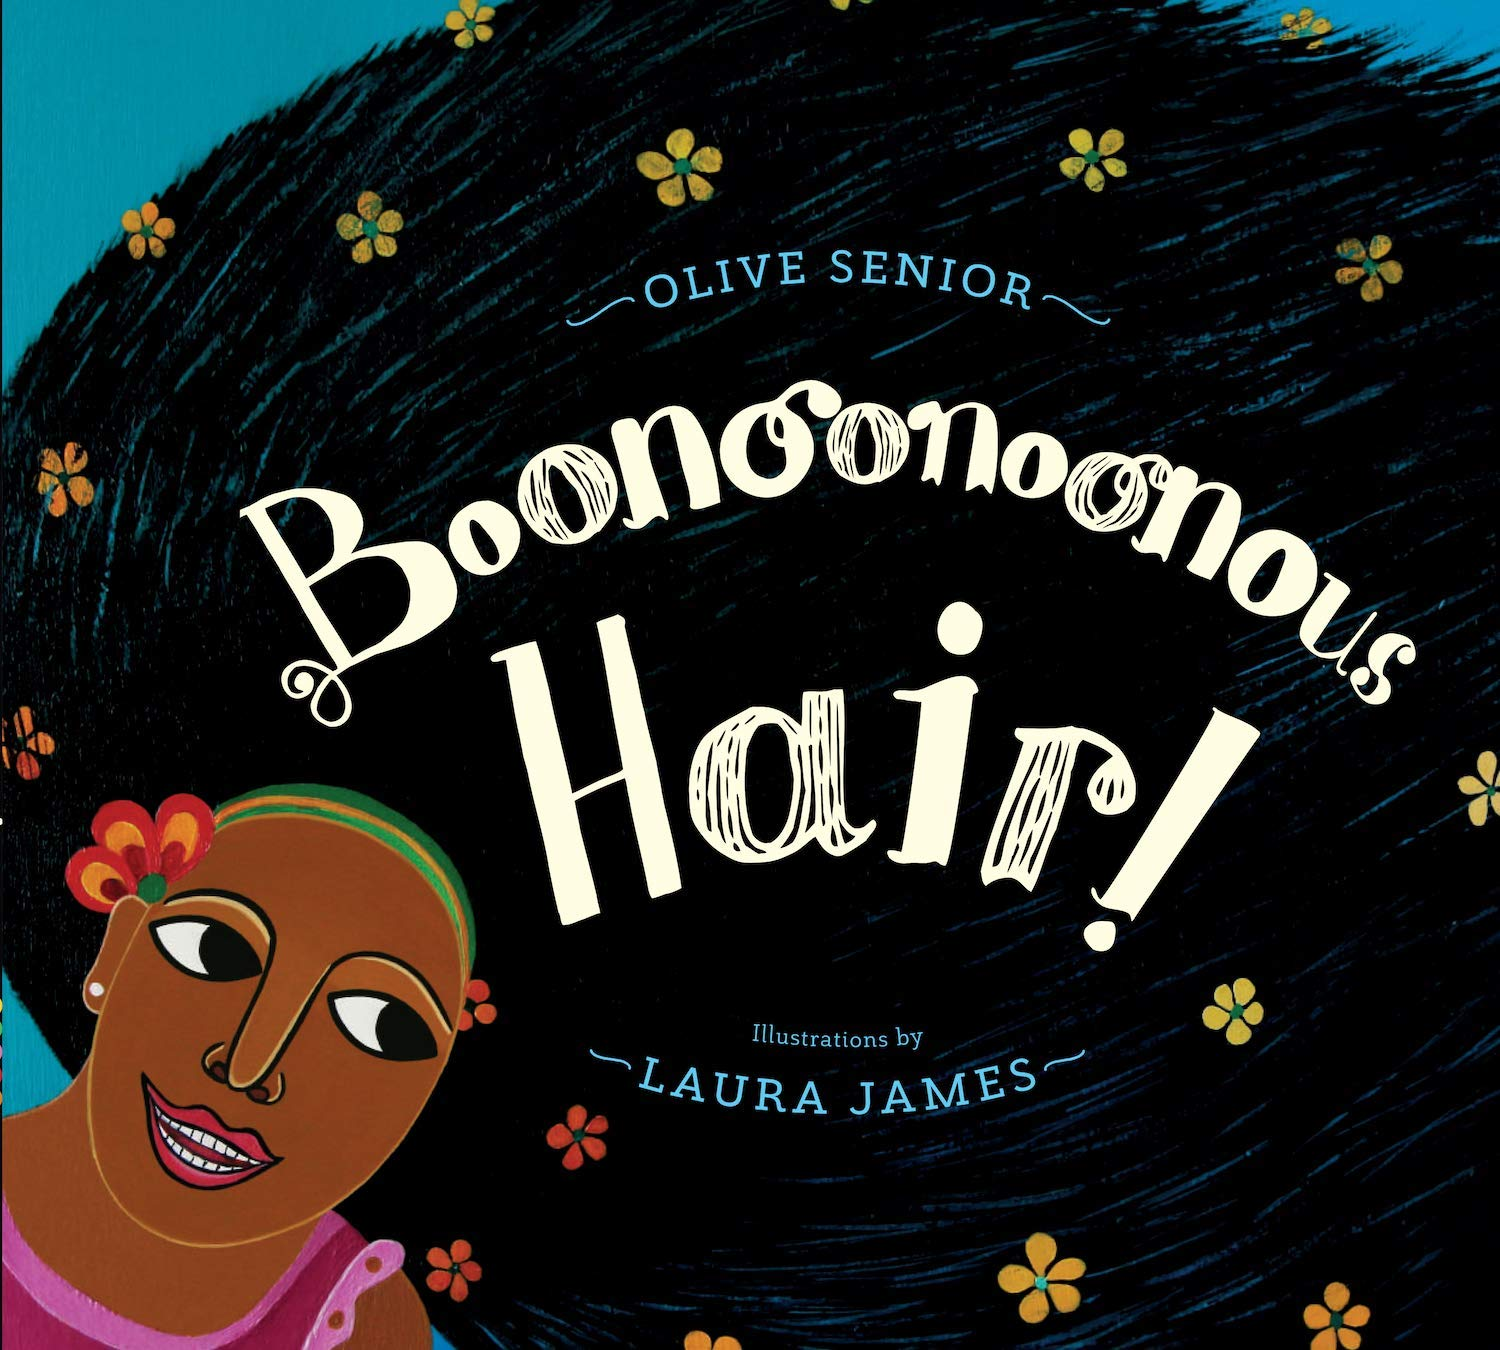 Boonoonoonous Hair by Olive Senior